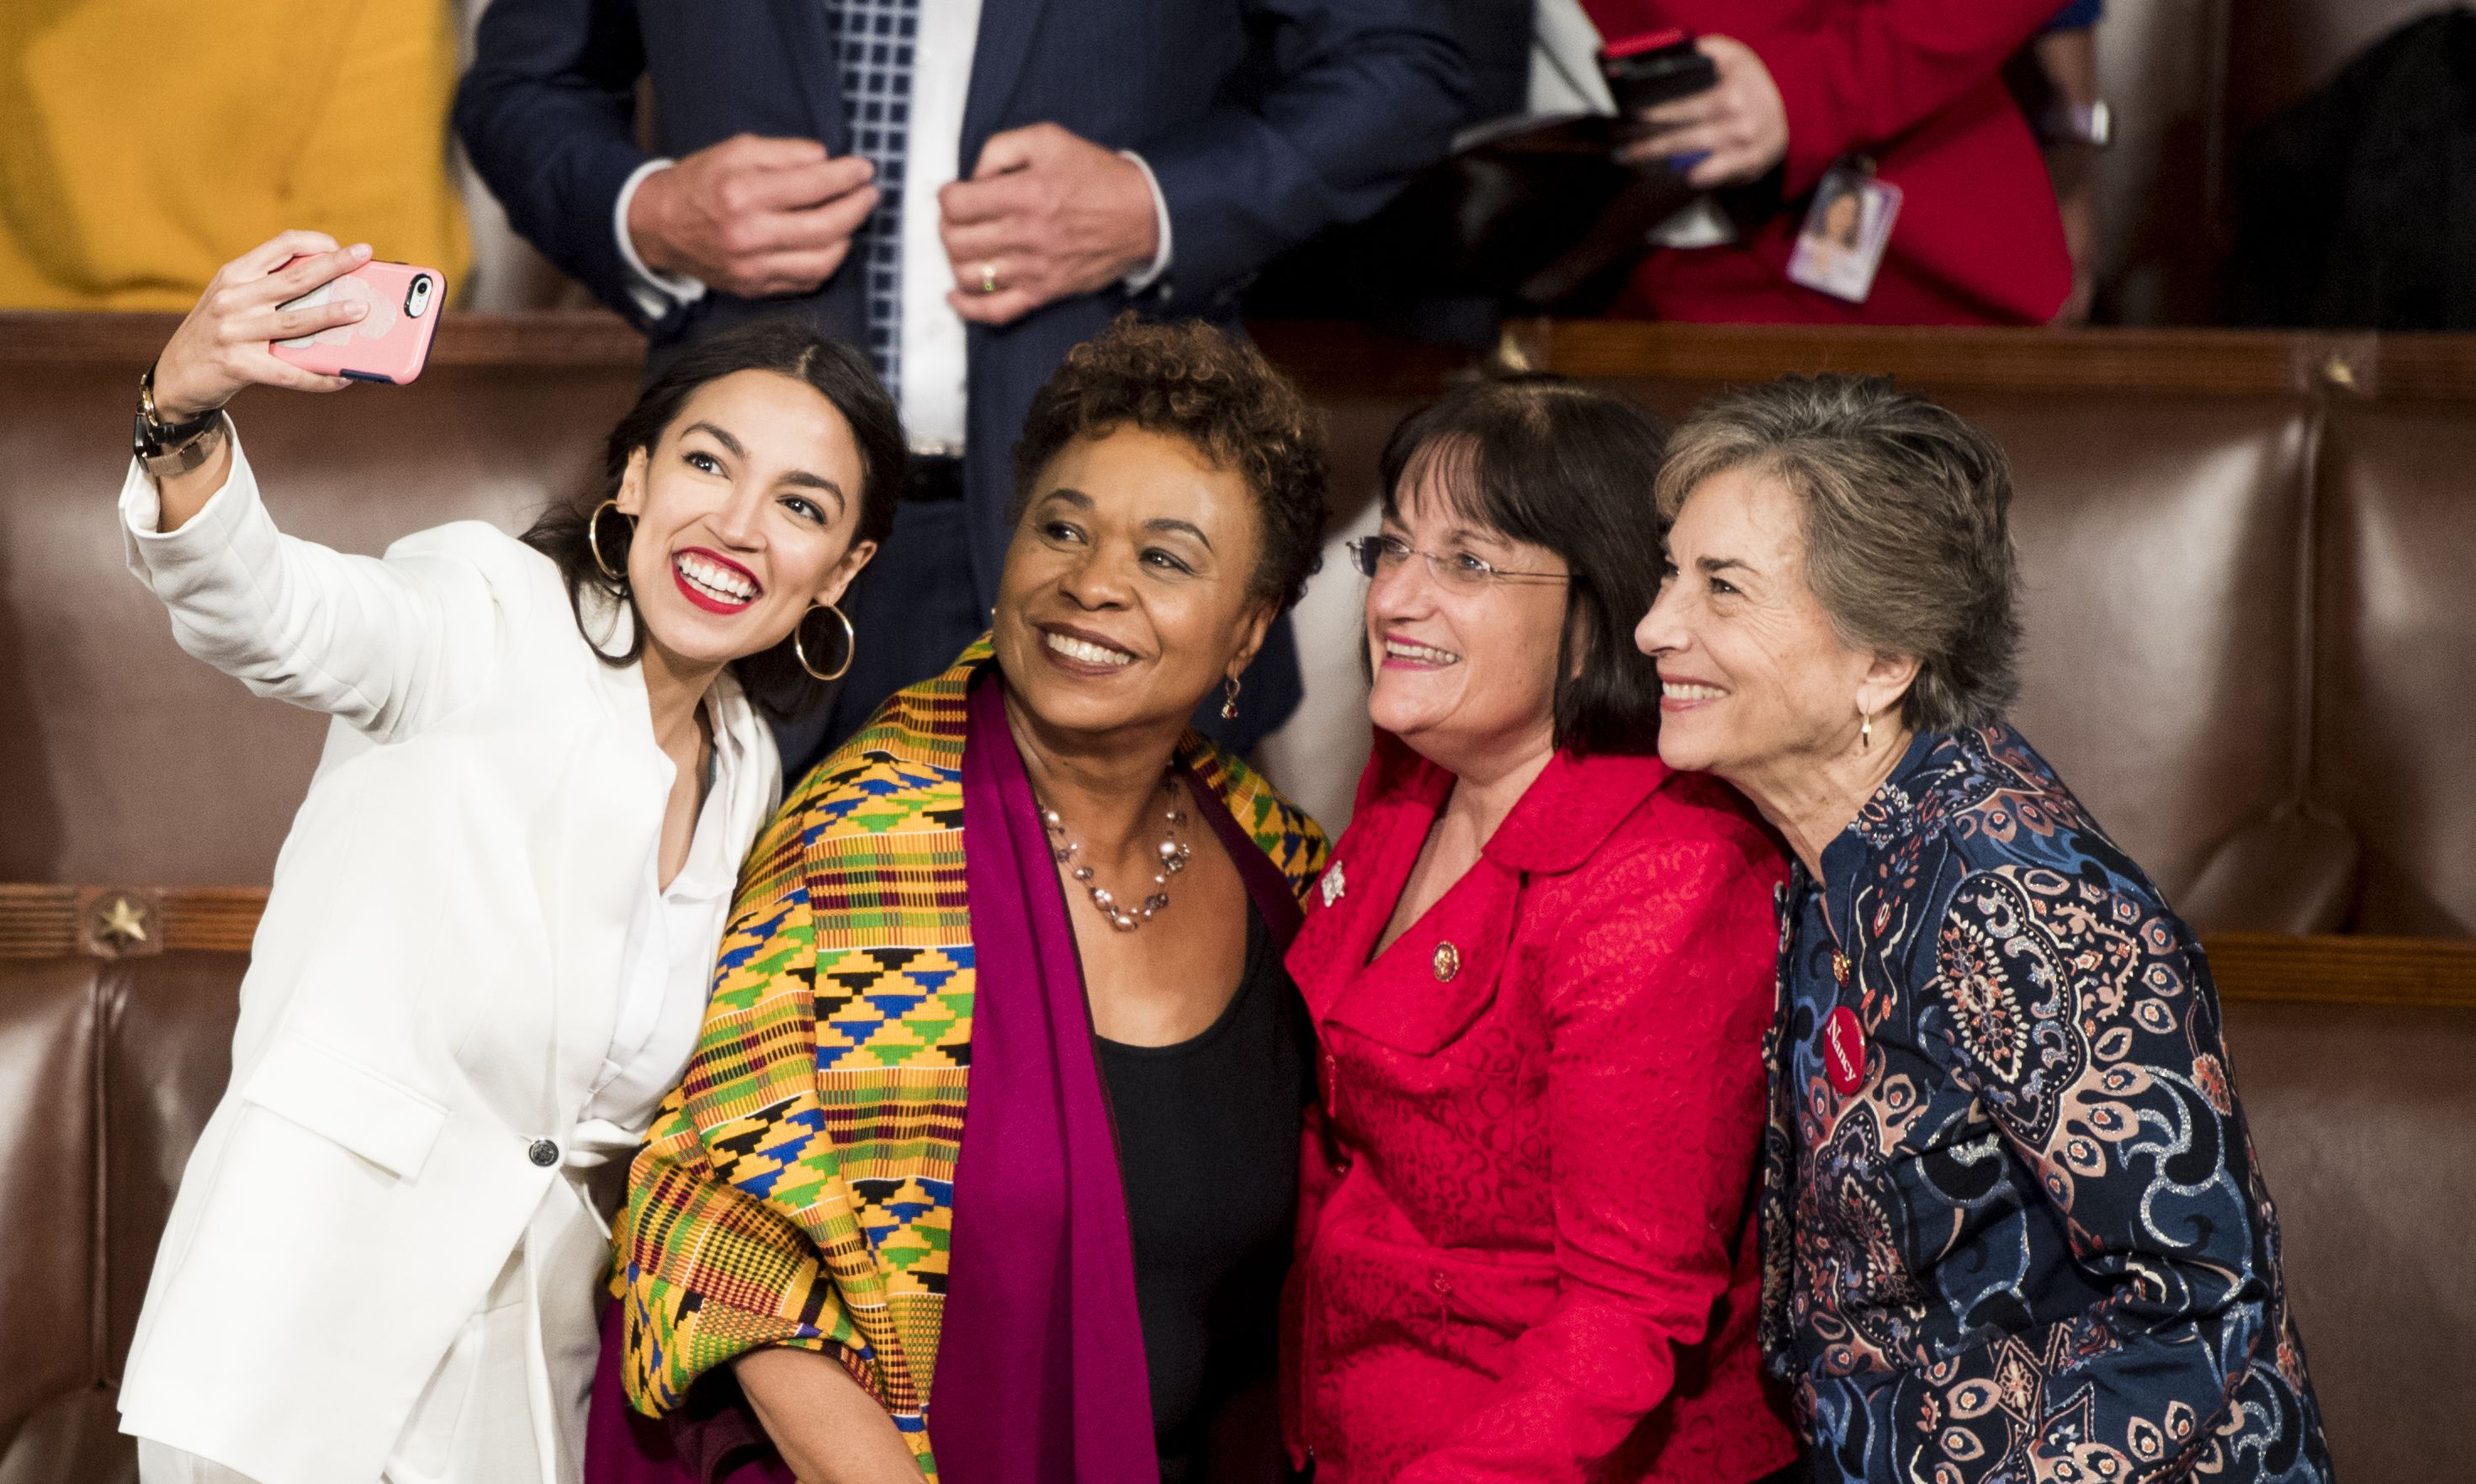 Alexandria Ocasio-Cortez takes a selfie with fellow lawmakers.